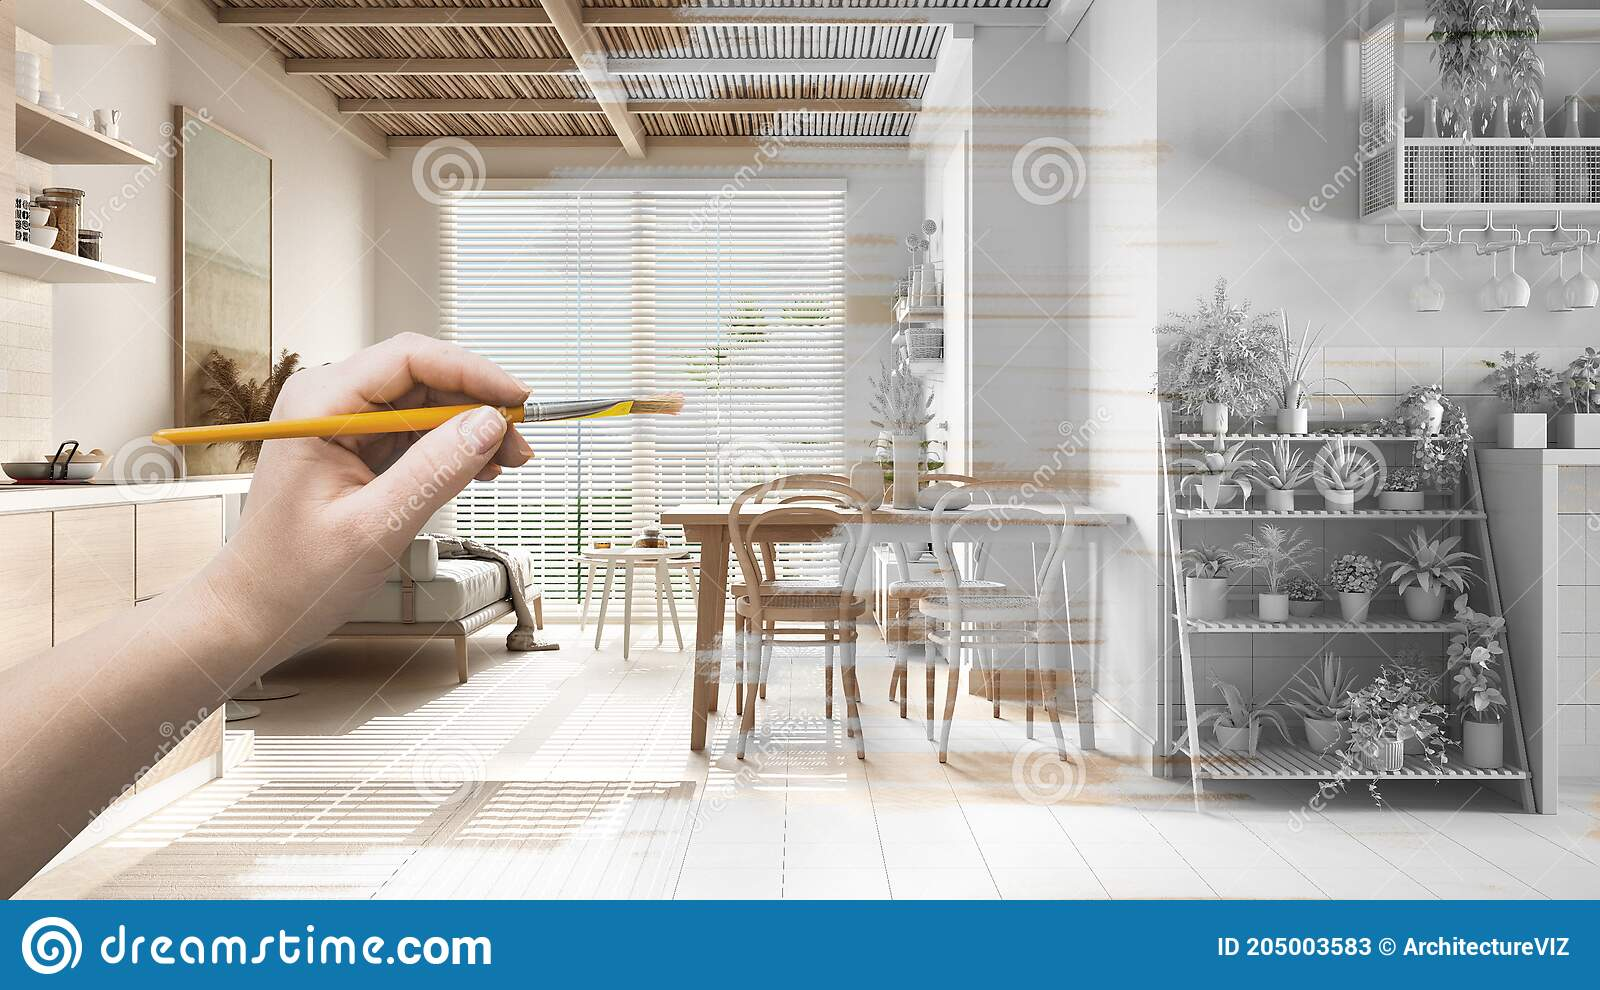 Blueprint Project Draft Sketch Of Cosy Wooden Living Room Hand Painting Interior Details Design Concept Idea Sustainable Stock Illustration Illustration Of Home Draft 205003583